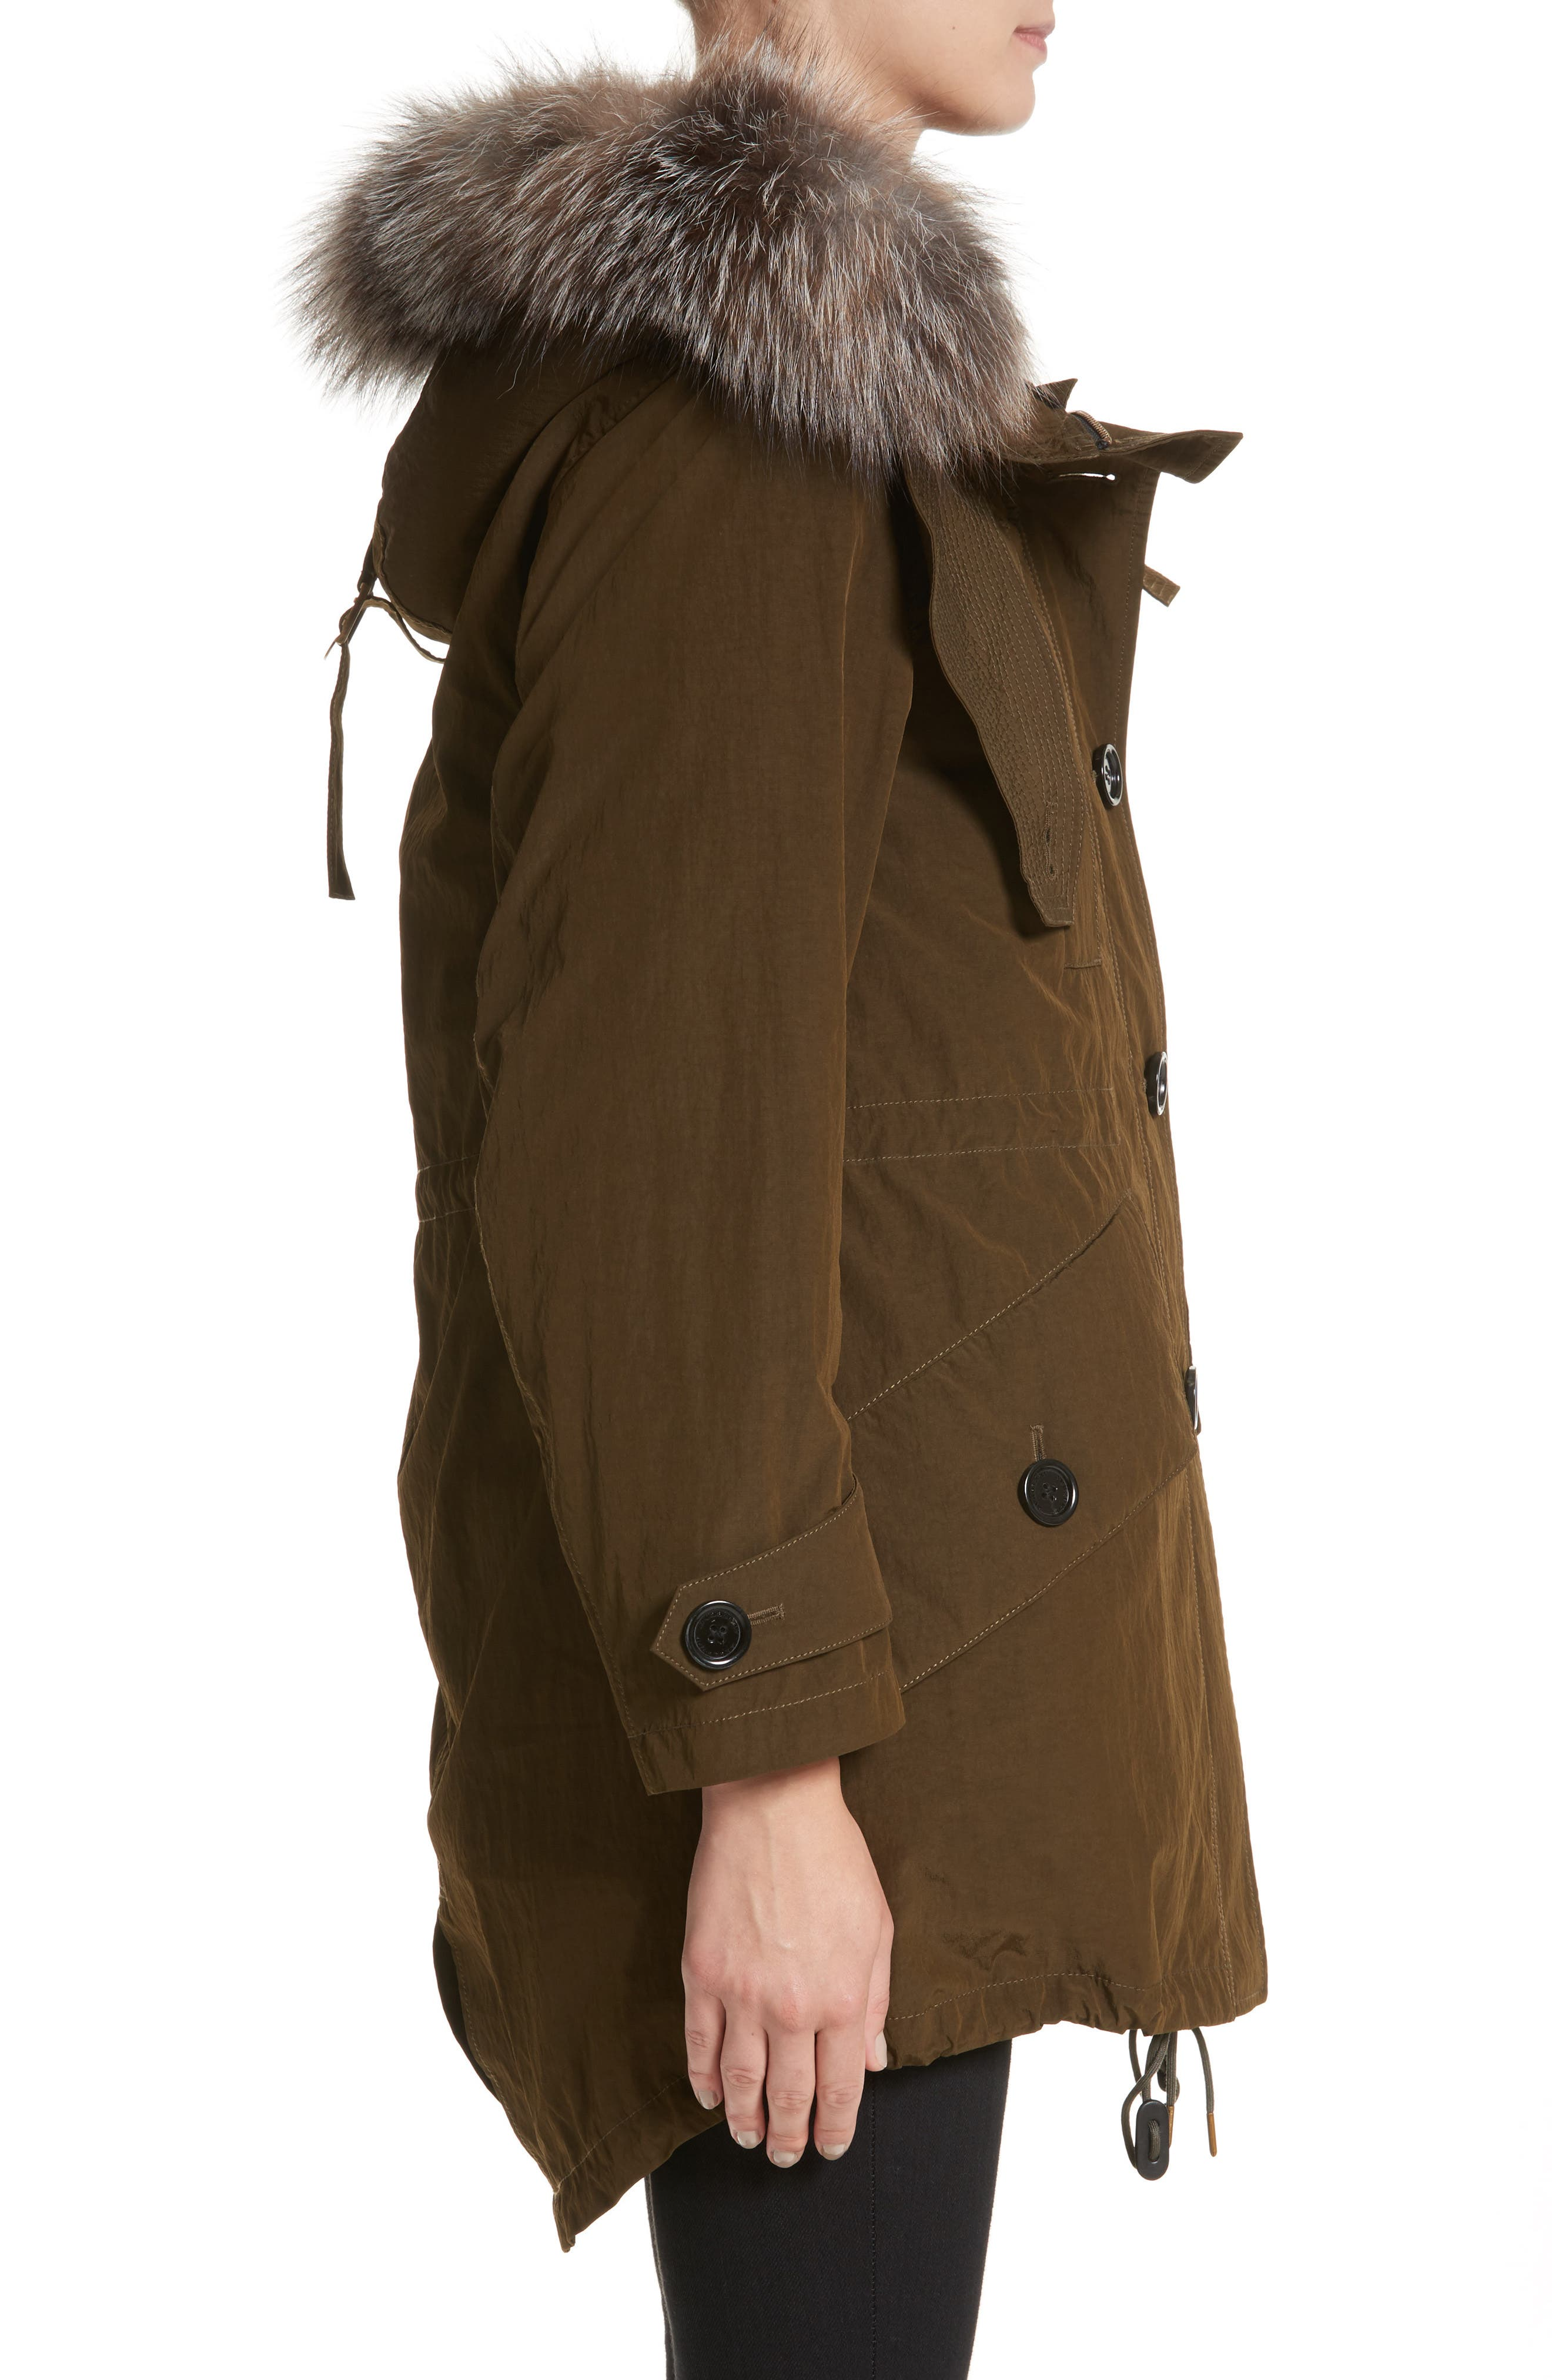 Ramsford 3-in-1 Hooded Parka with Genuine Fox Fur & Genuine Shearling Trim,                             Alternate thumbnail 4, color,                             Dark Olive